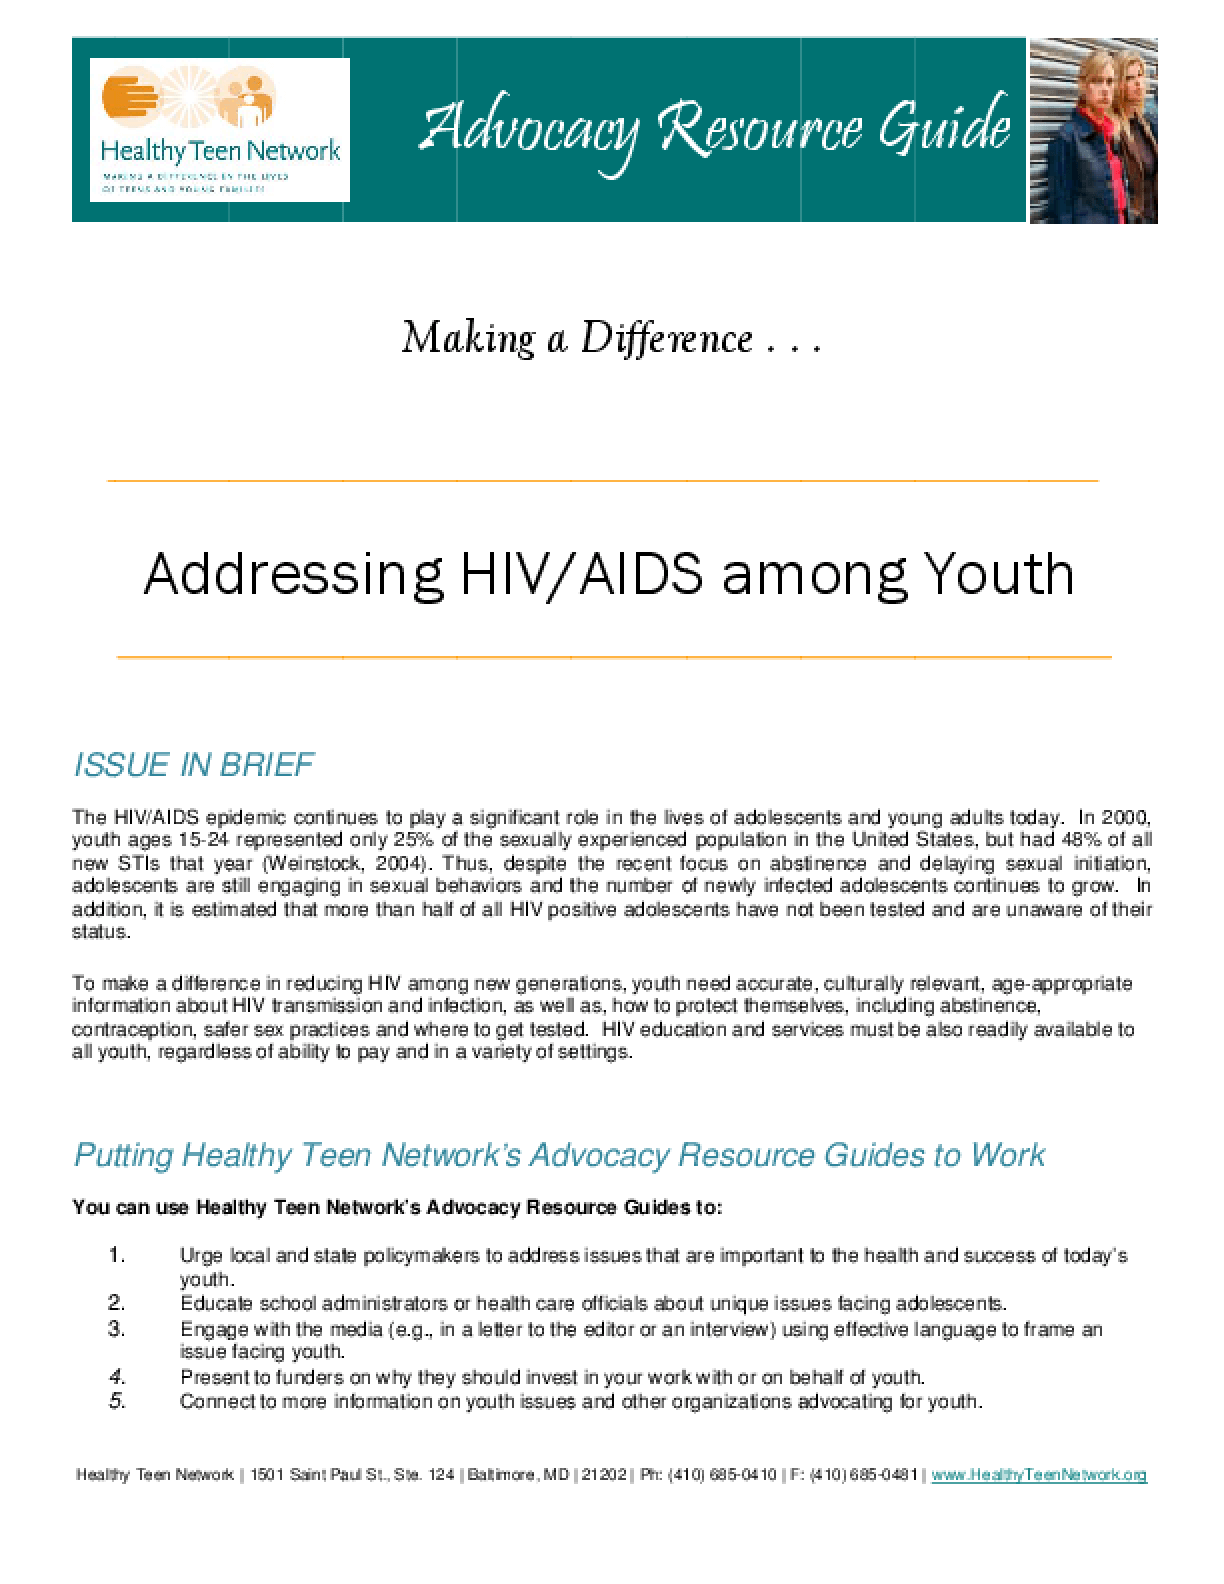 Addressing HIV/AIDS Among Youth